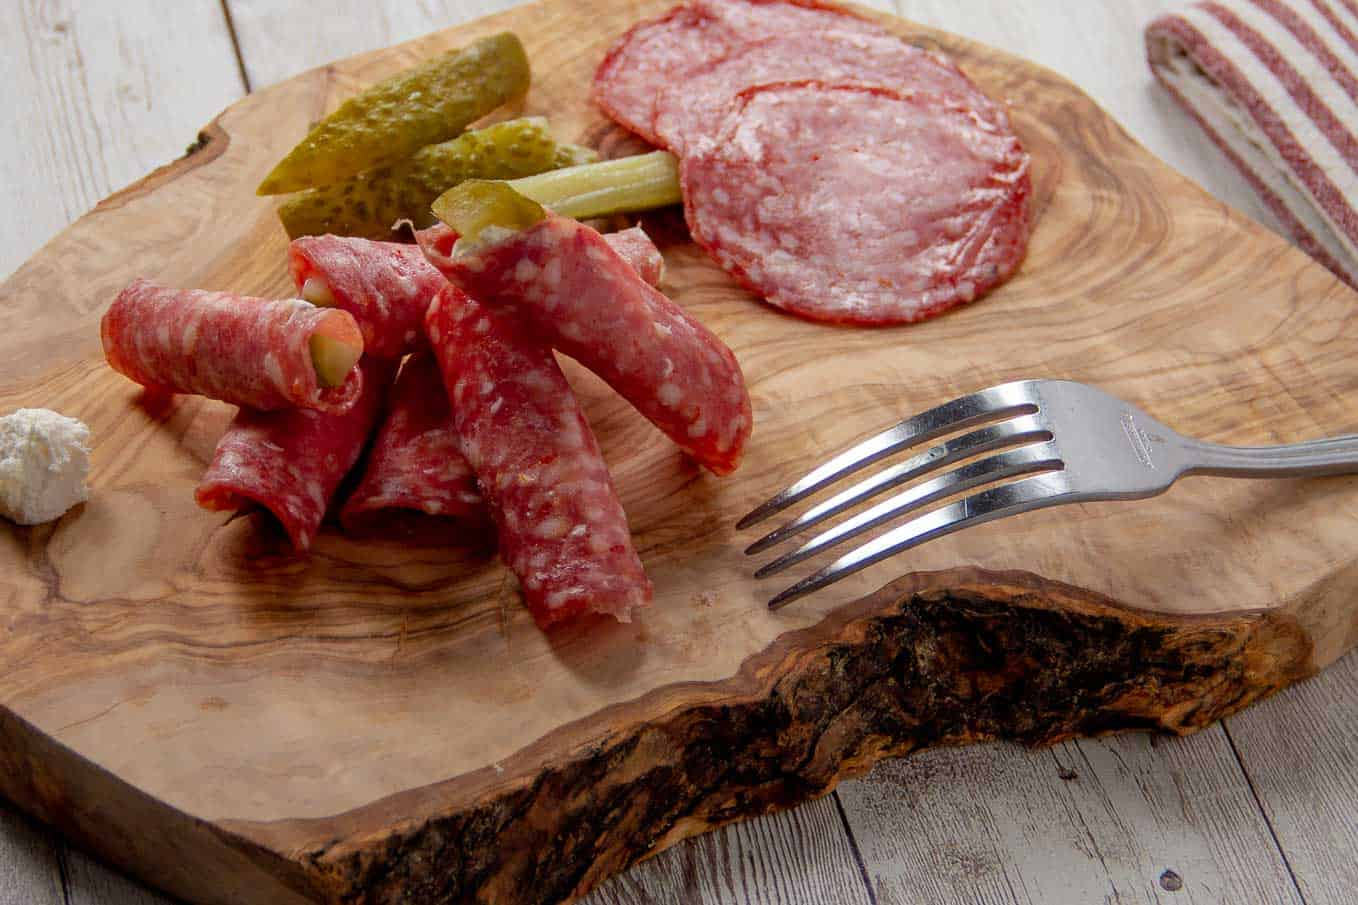 Salami presented on a wooden appetizer plate with extra pickle slices